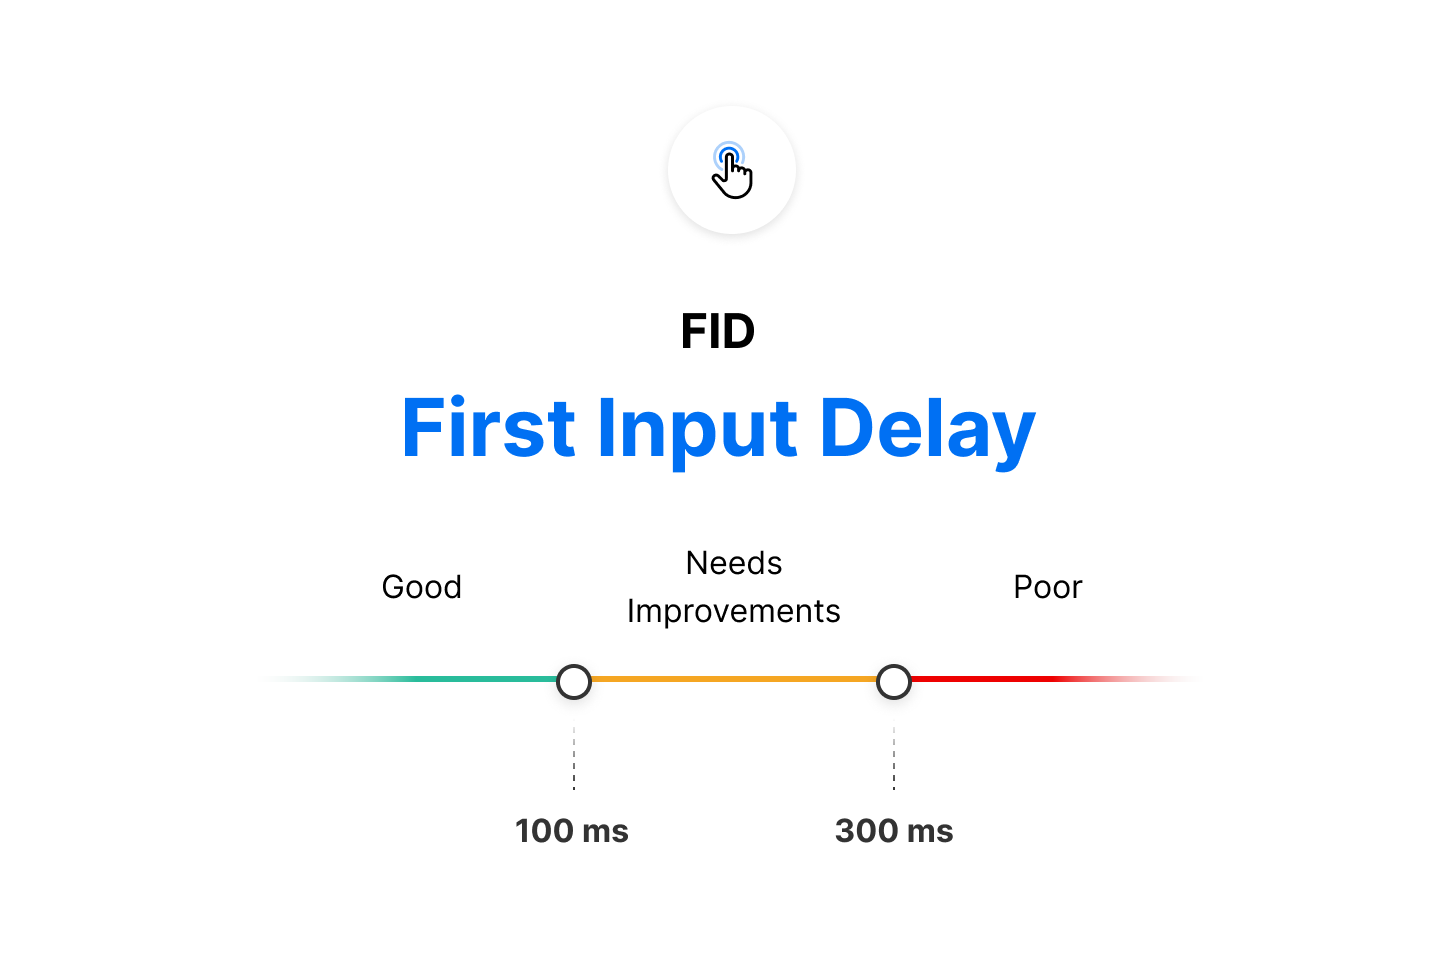 According to Google, aim for an FID below 100ms for a better page experience.